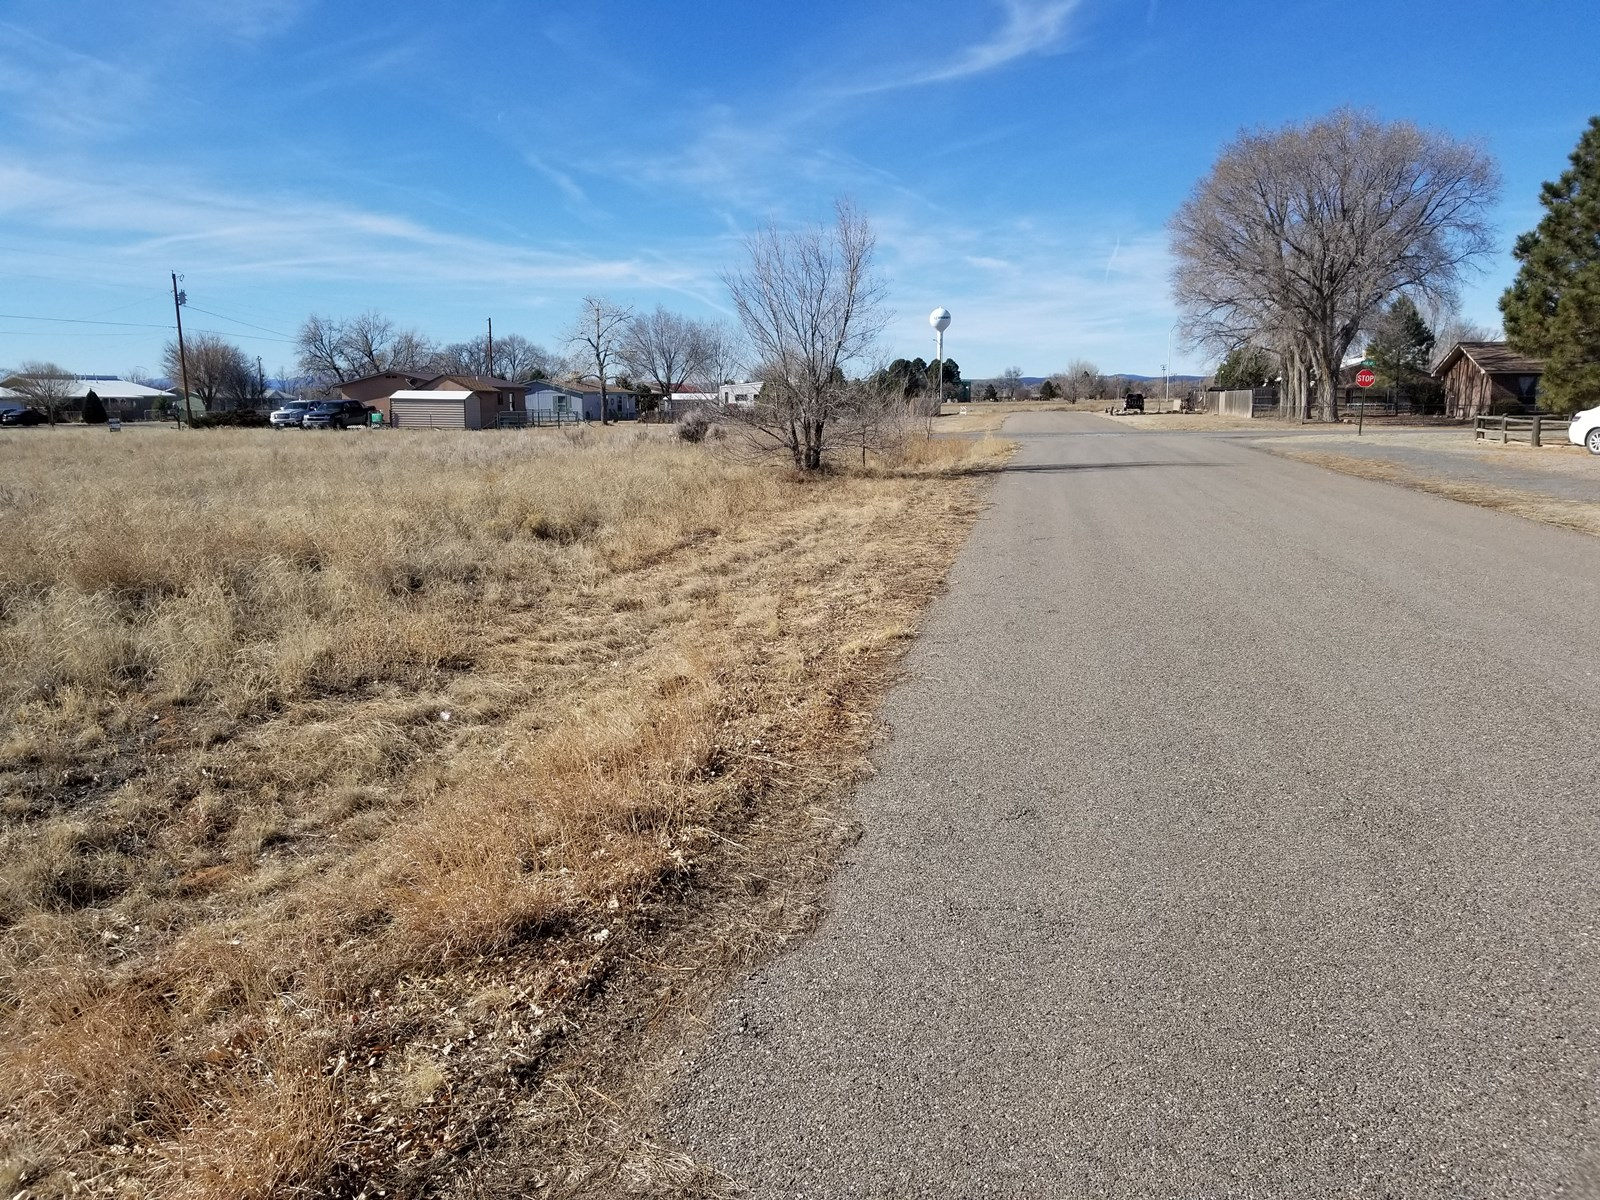 Residential Lot For Sale In The City of Moriarty NM